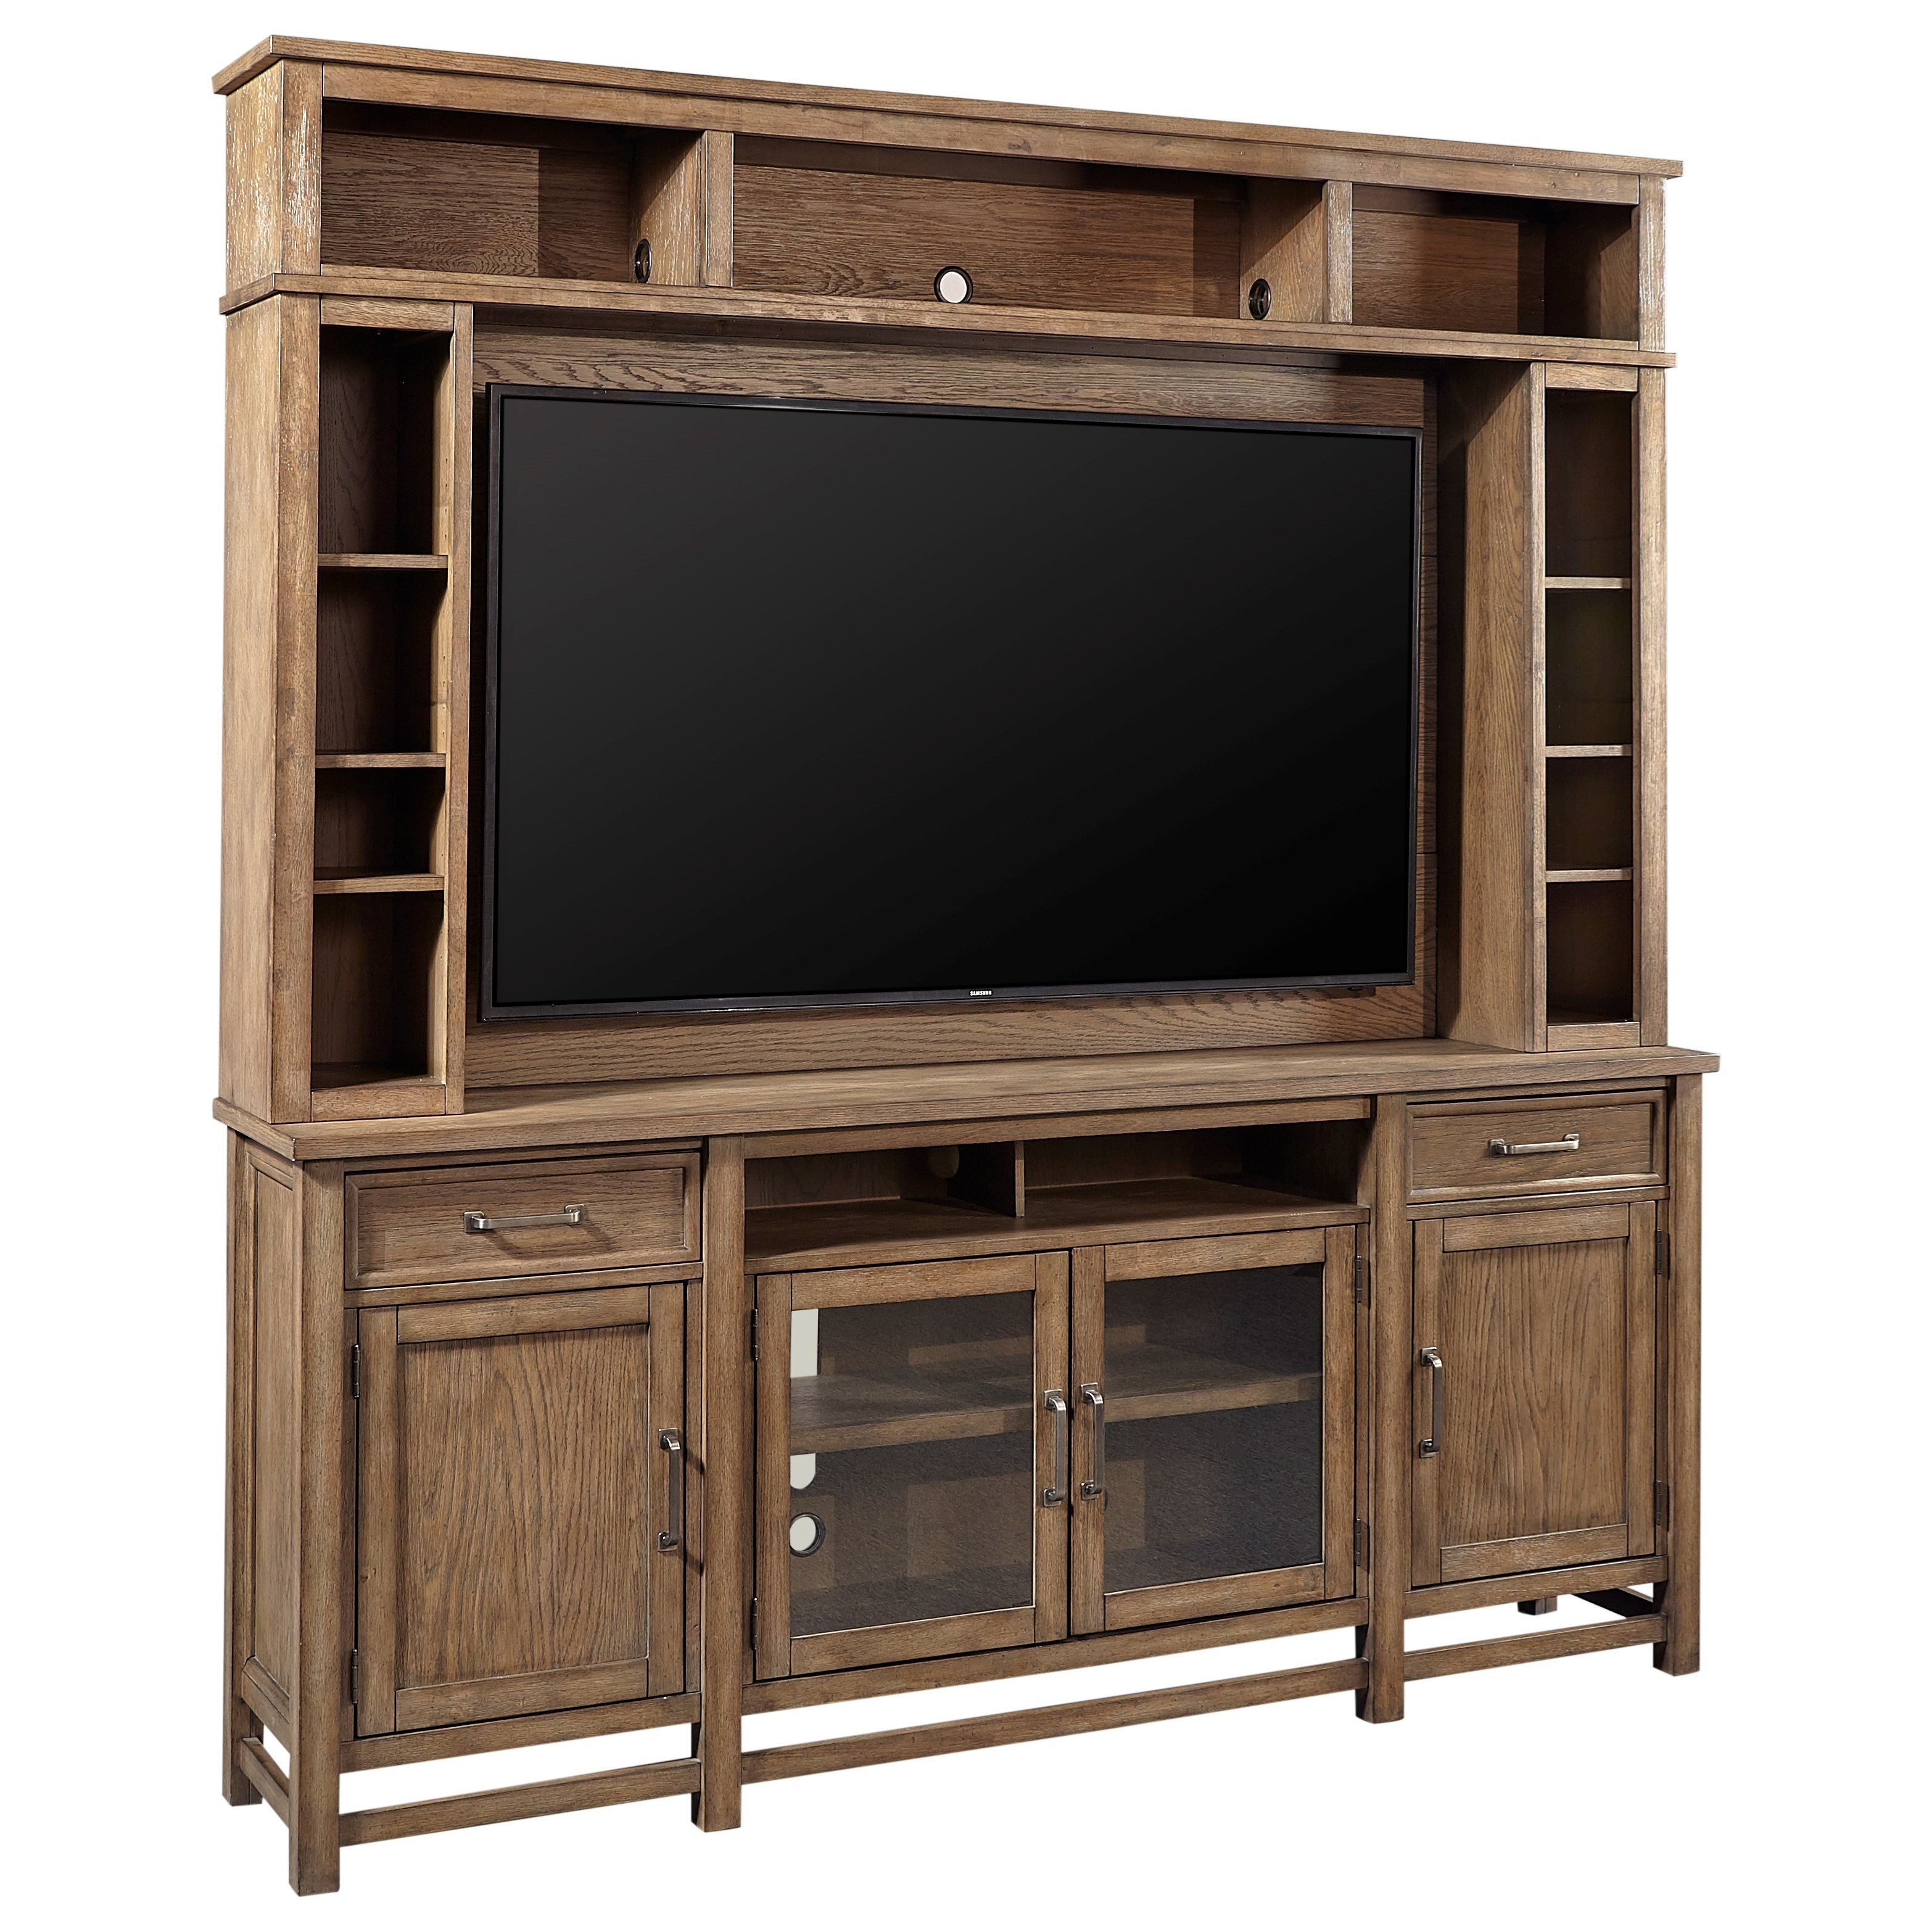 Terrace Point Entertainment Console and Hutch by Aspenhome at Walker's Furniture